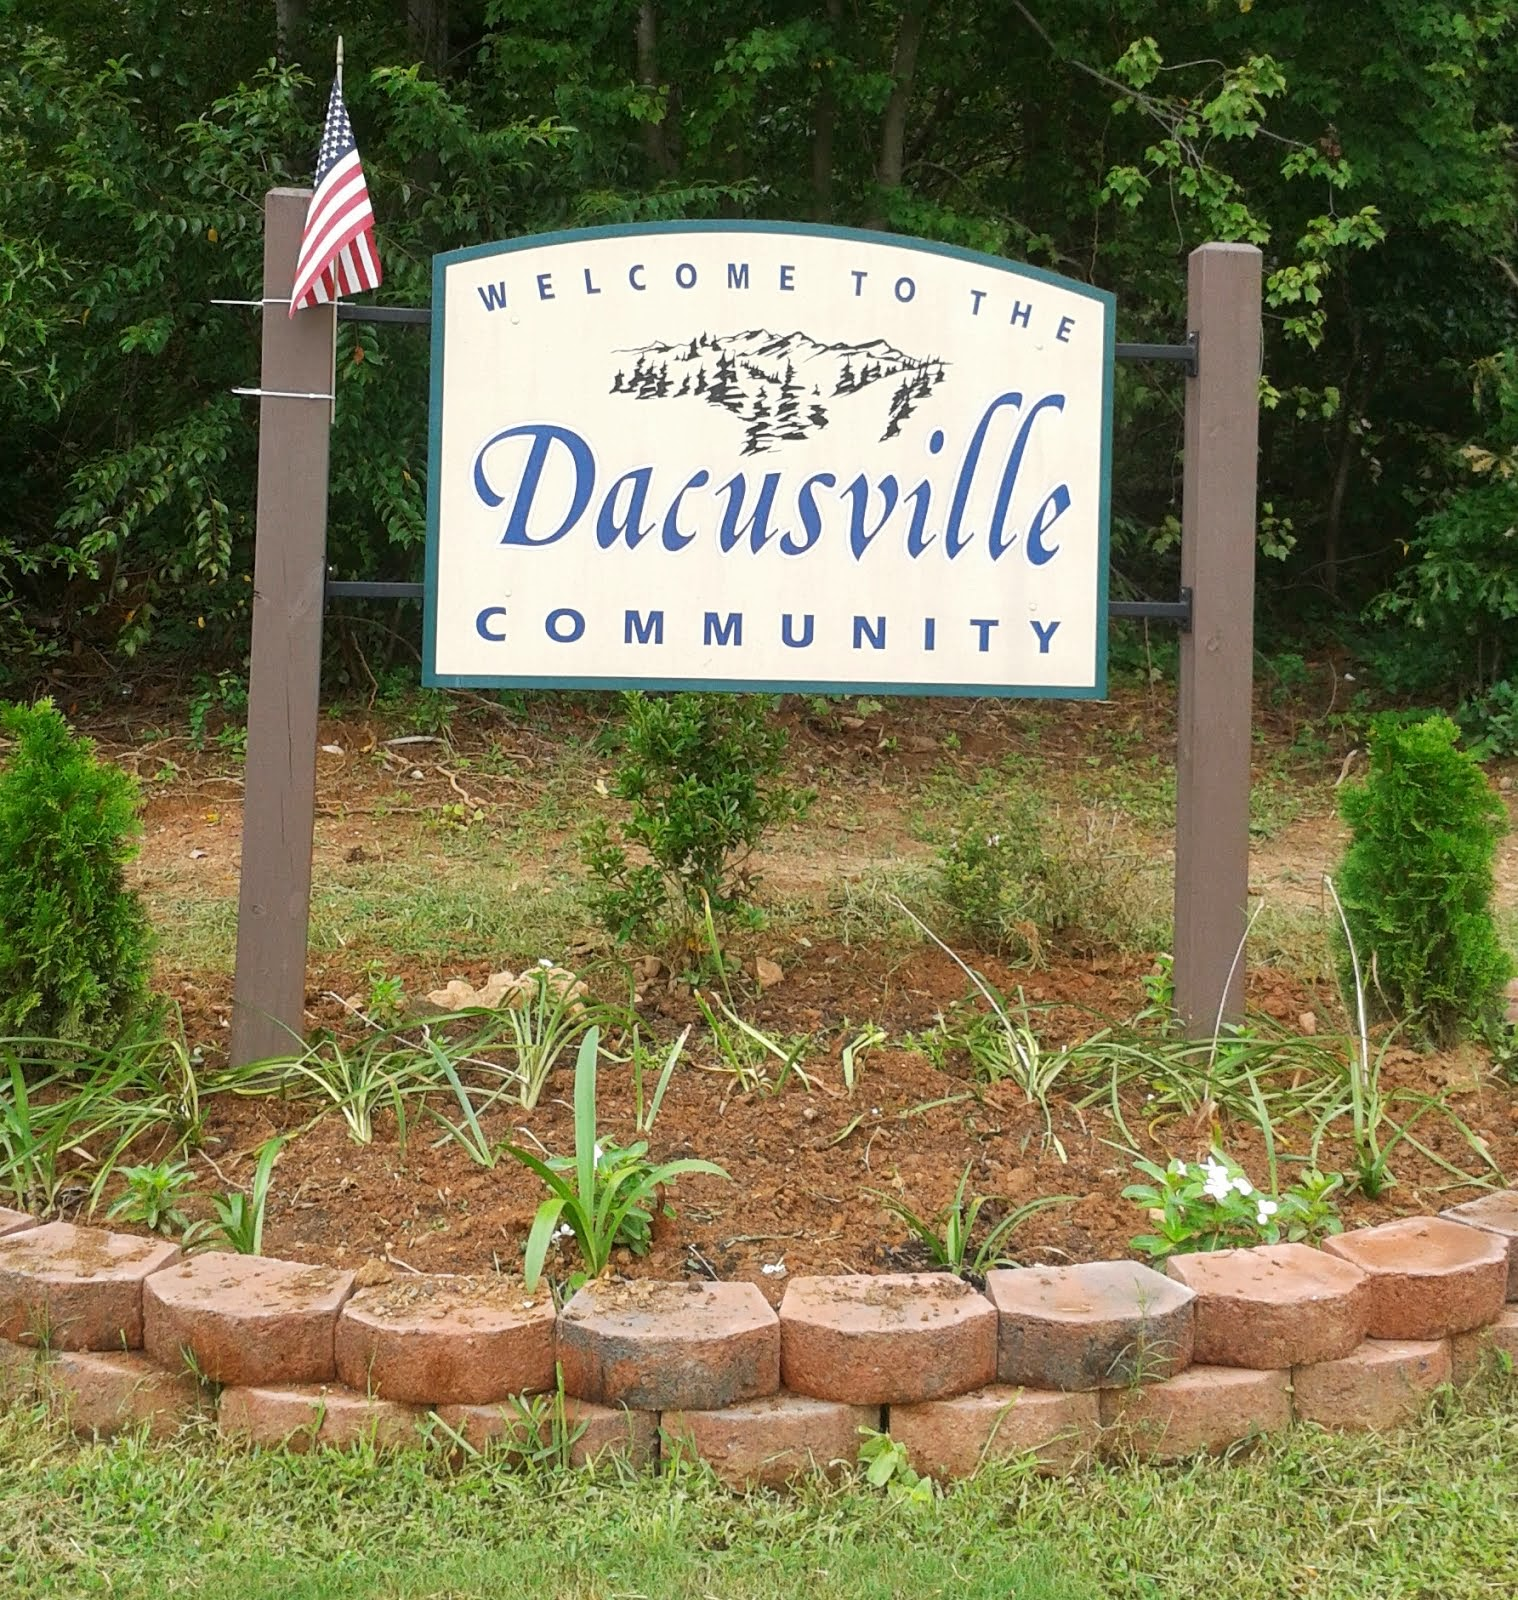 If you have a story or information about Dacusville you would like to share please contact us.